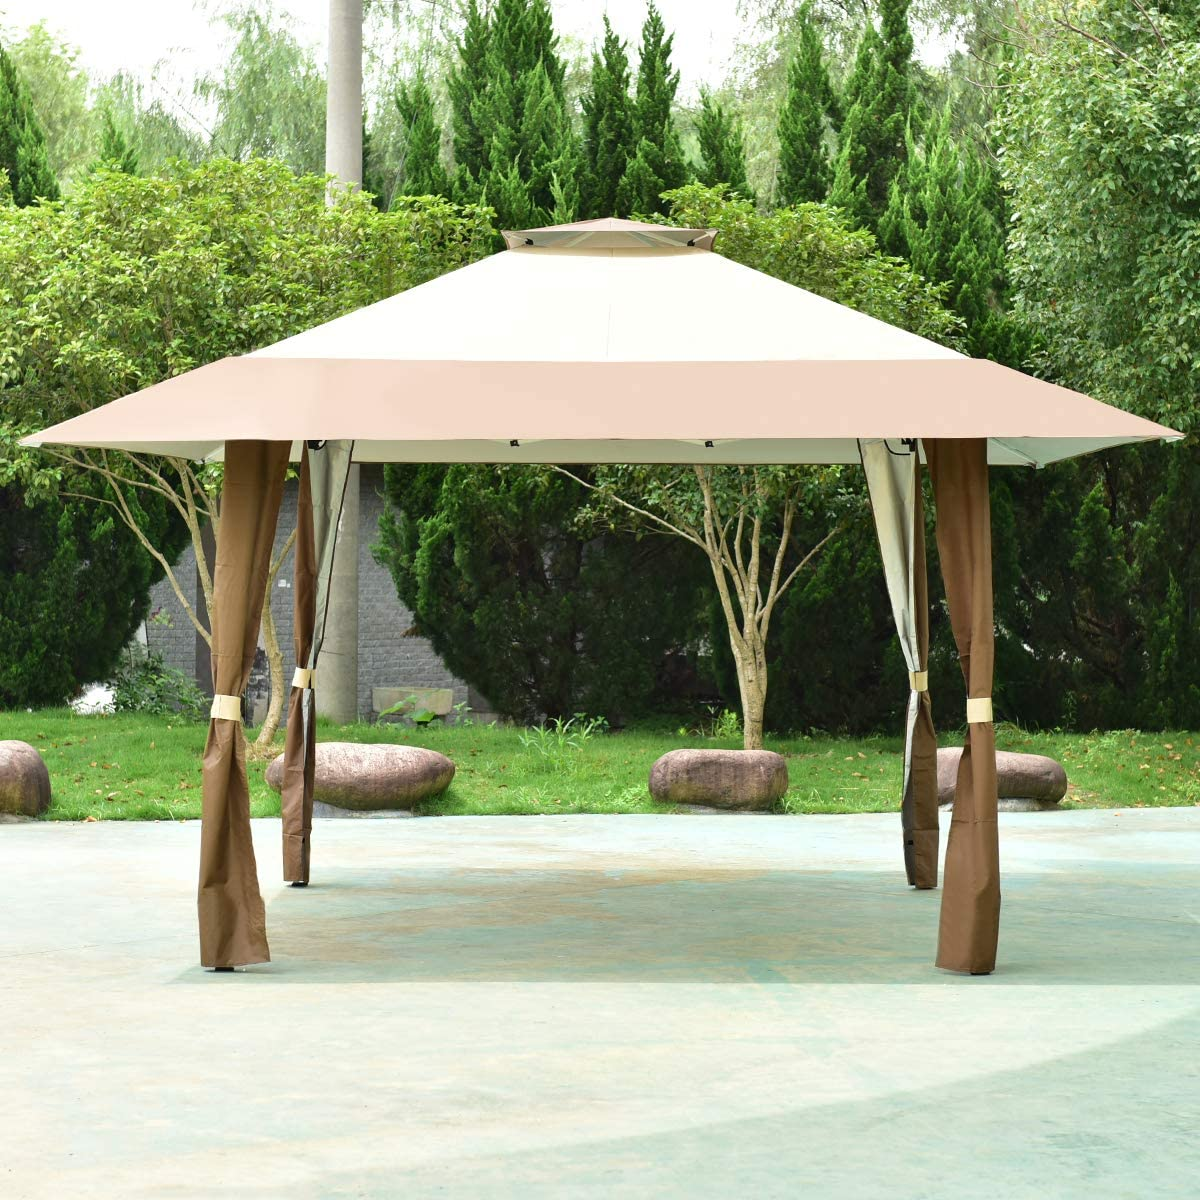 COSTWAY 4 x 4m Pop-Up Outdoor Gazebo, Waterproof Pavilion Canopy Tent with 2-Tier Roof, Carrying Bag, Large Marquee Shelter for Patio